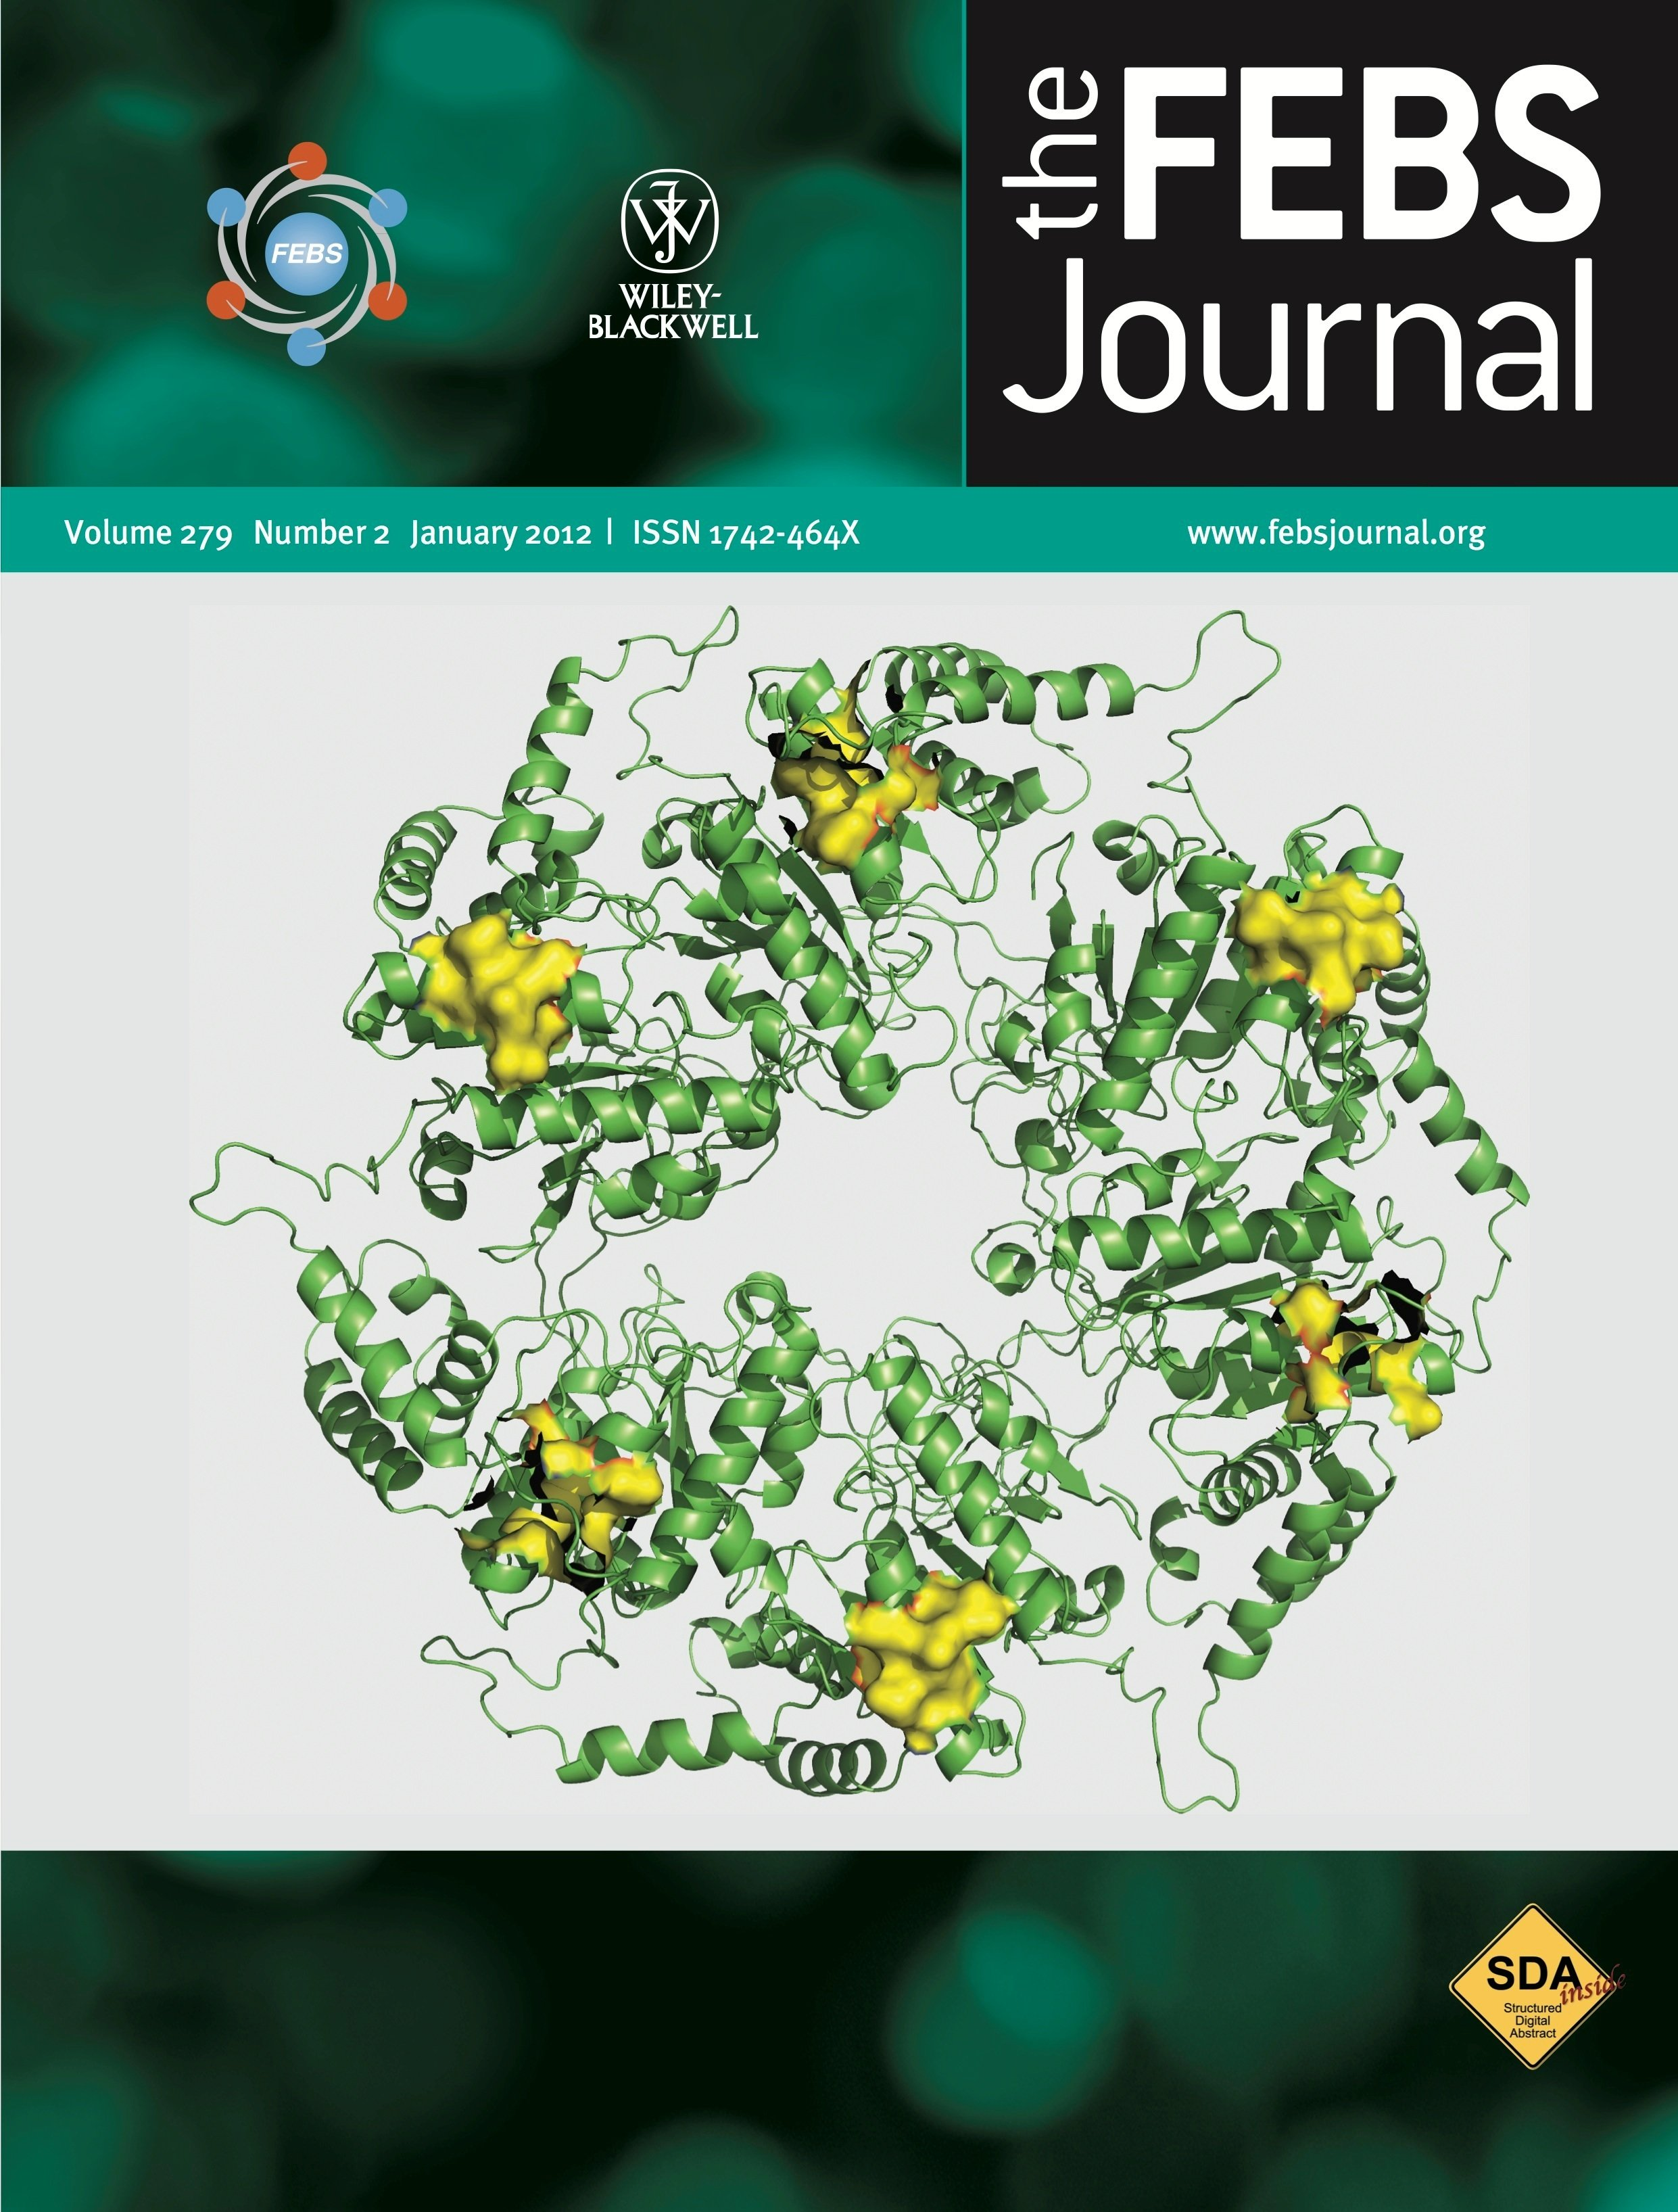 Suman Dhar's work on the cover of the FEBS journal